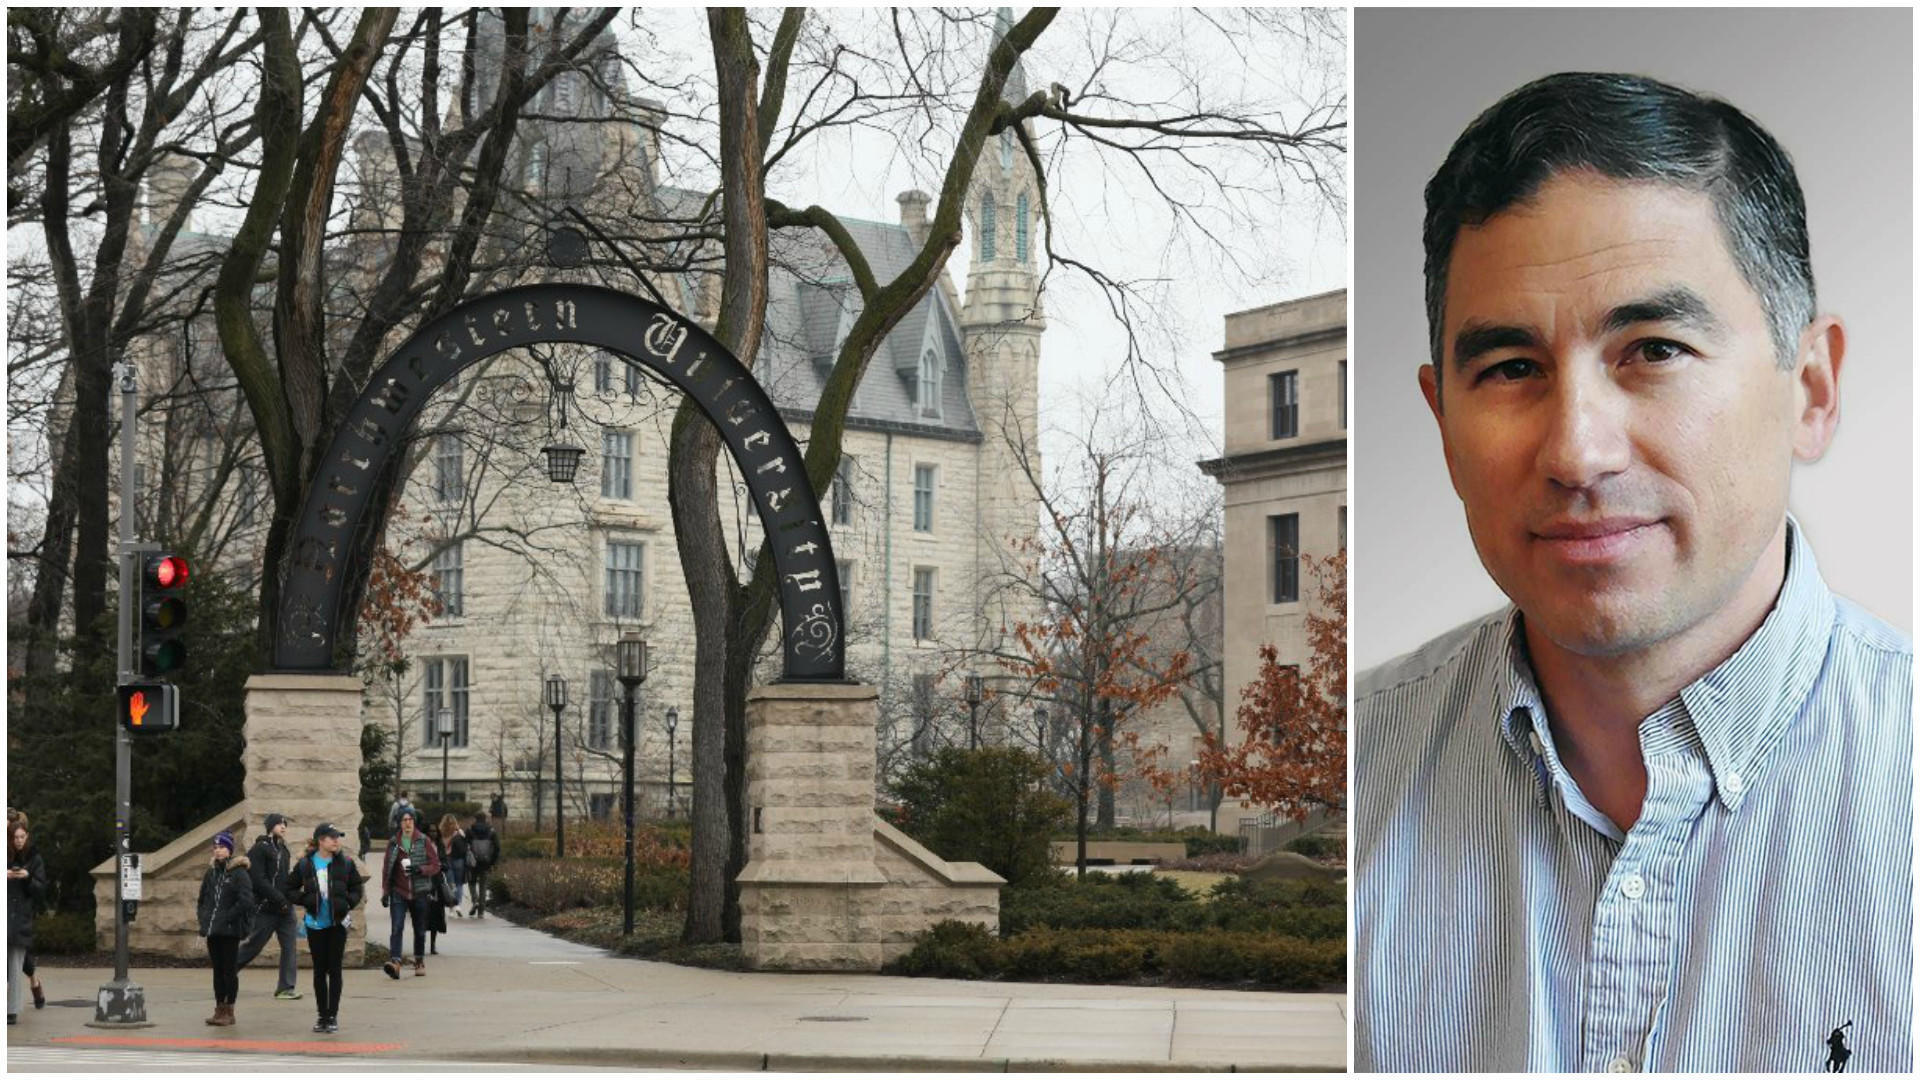 Northwestern journalism professor accused of misconduct takes leave of absence